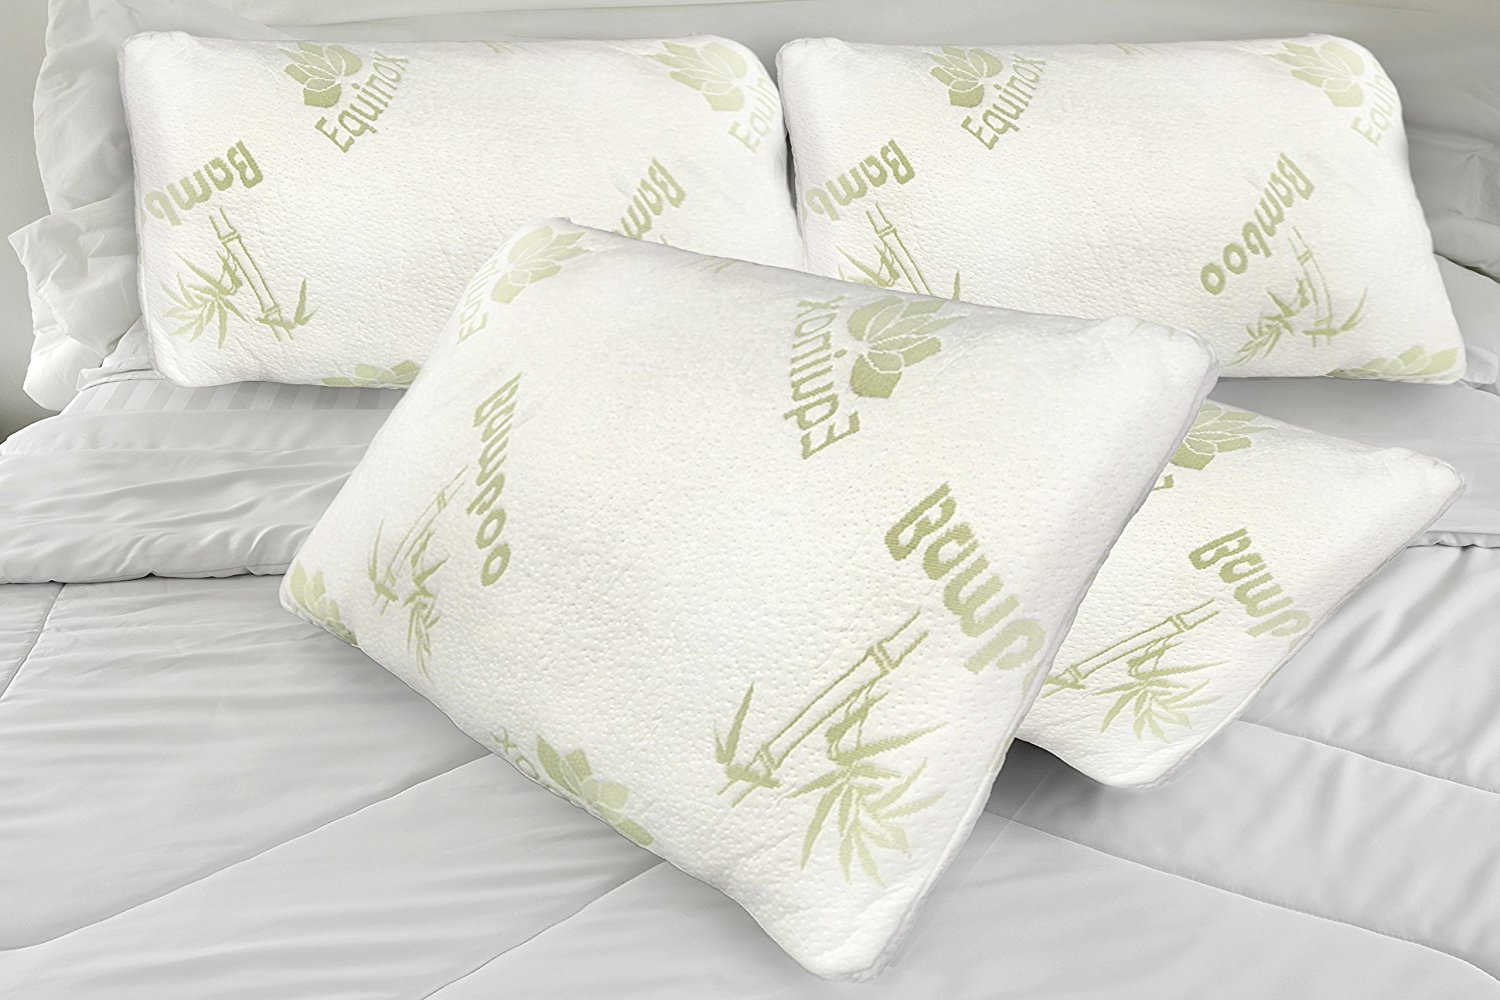 shredded memory amazoncom gallery comfortac with ac comfort pillow cushion amazon reviews foam by